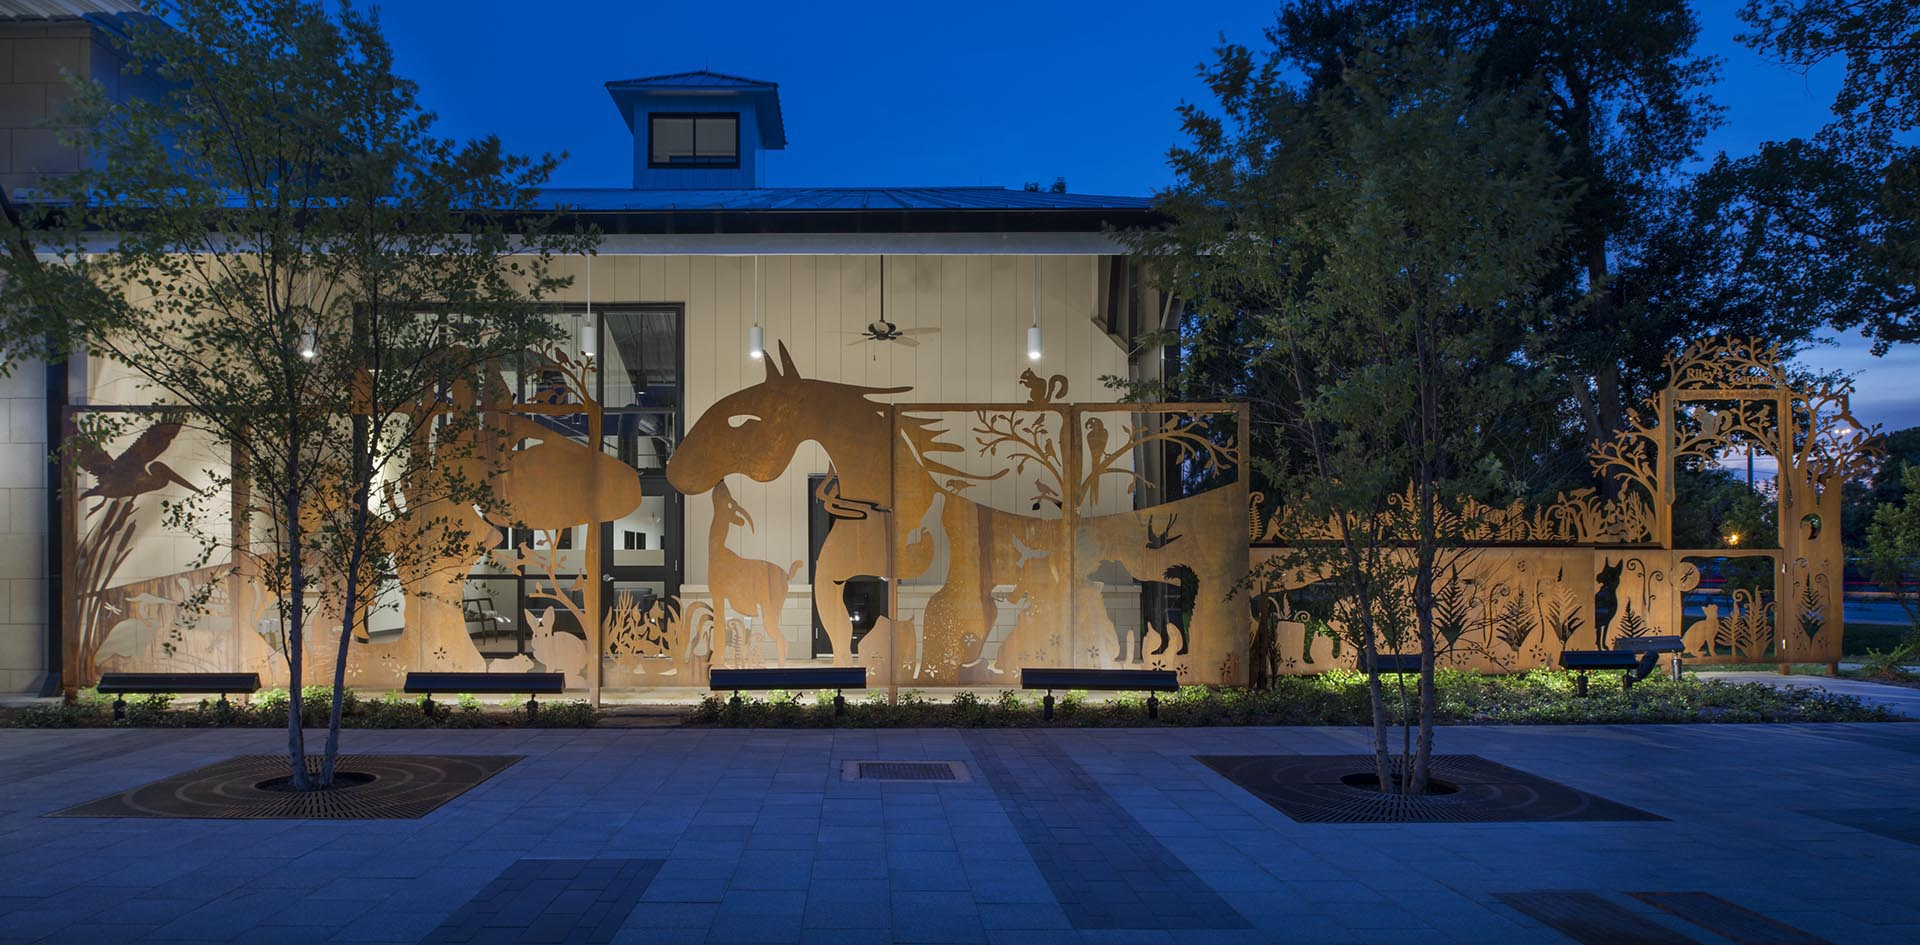 13 HSPCA state of the art animal shelter and wildlife center by Jackson & Ryan Architects